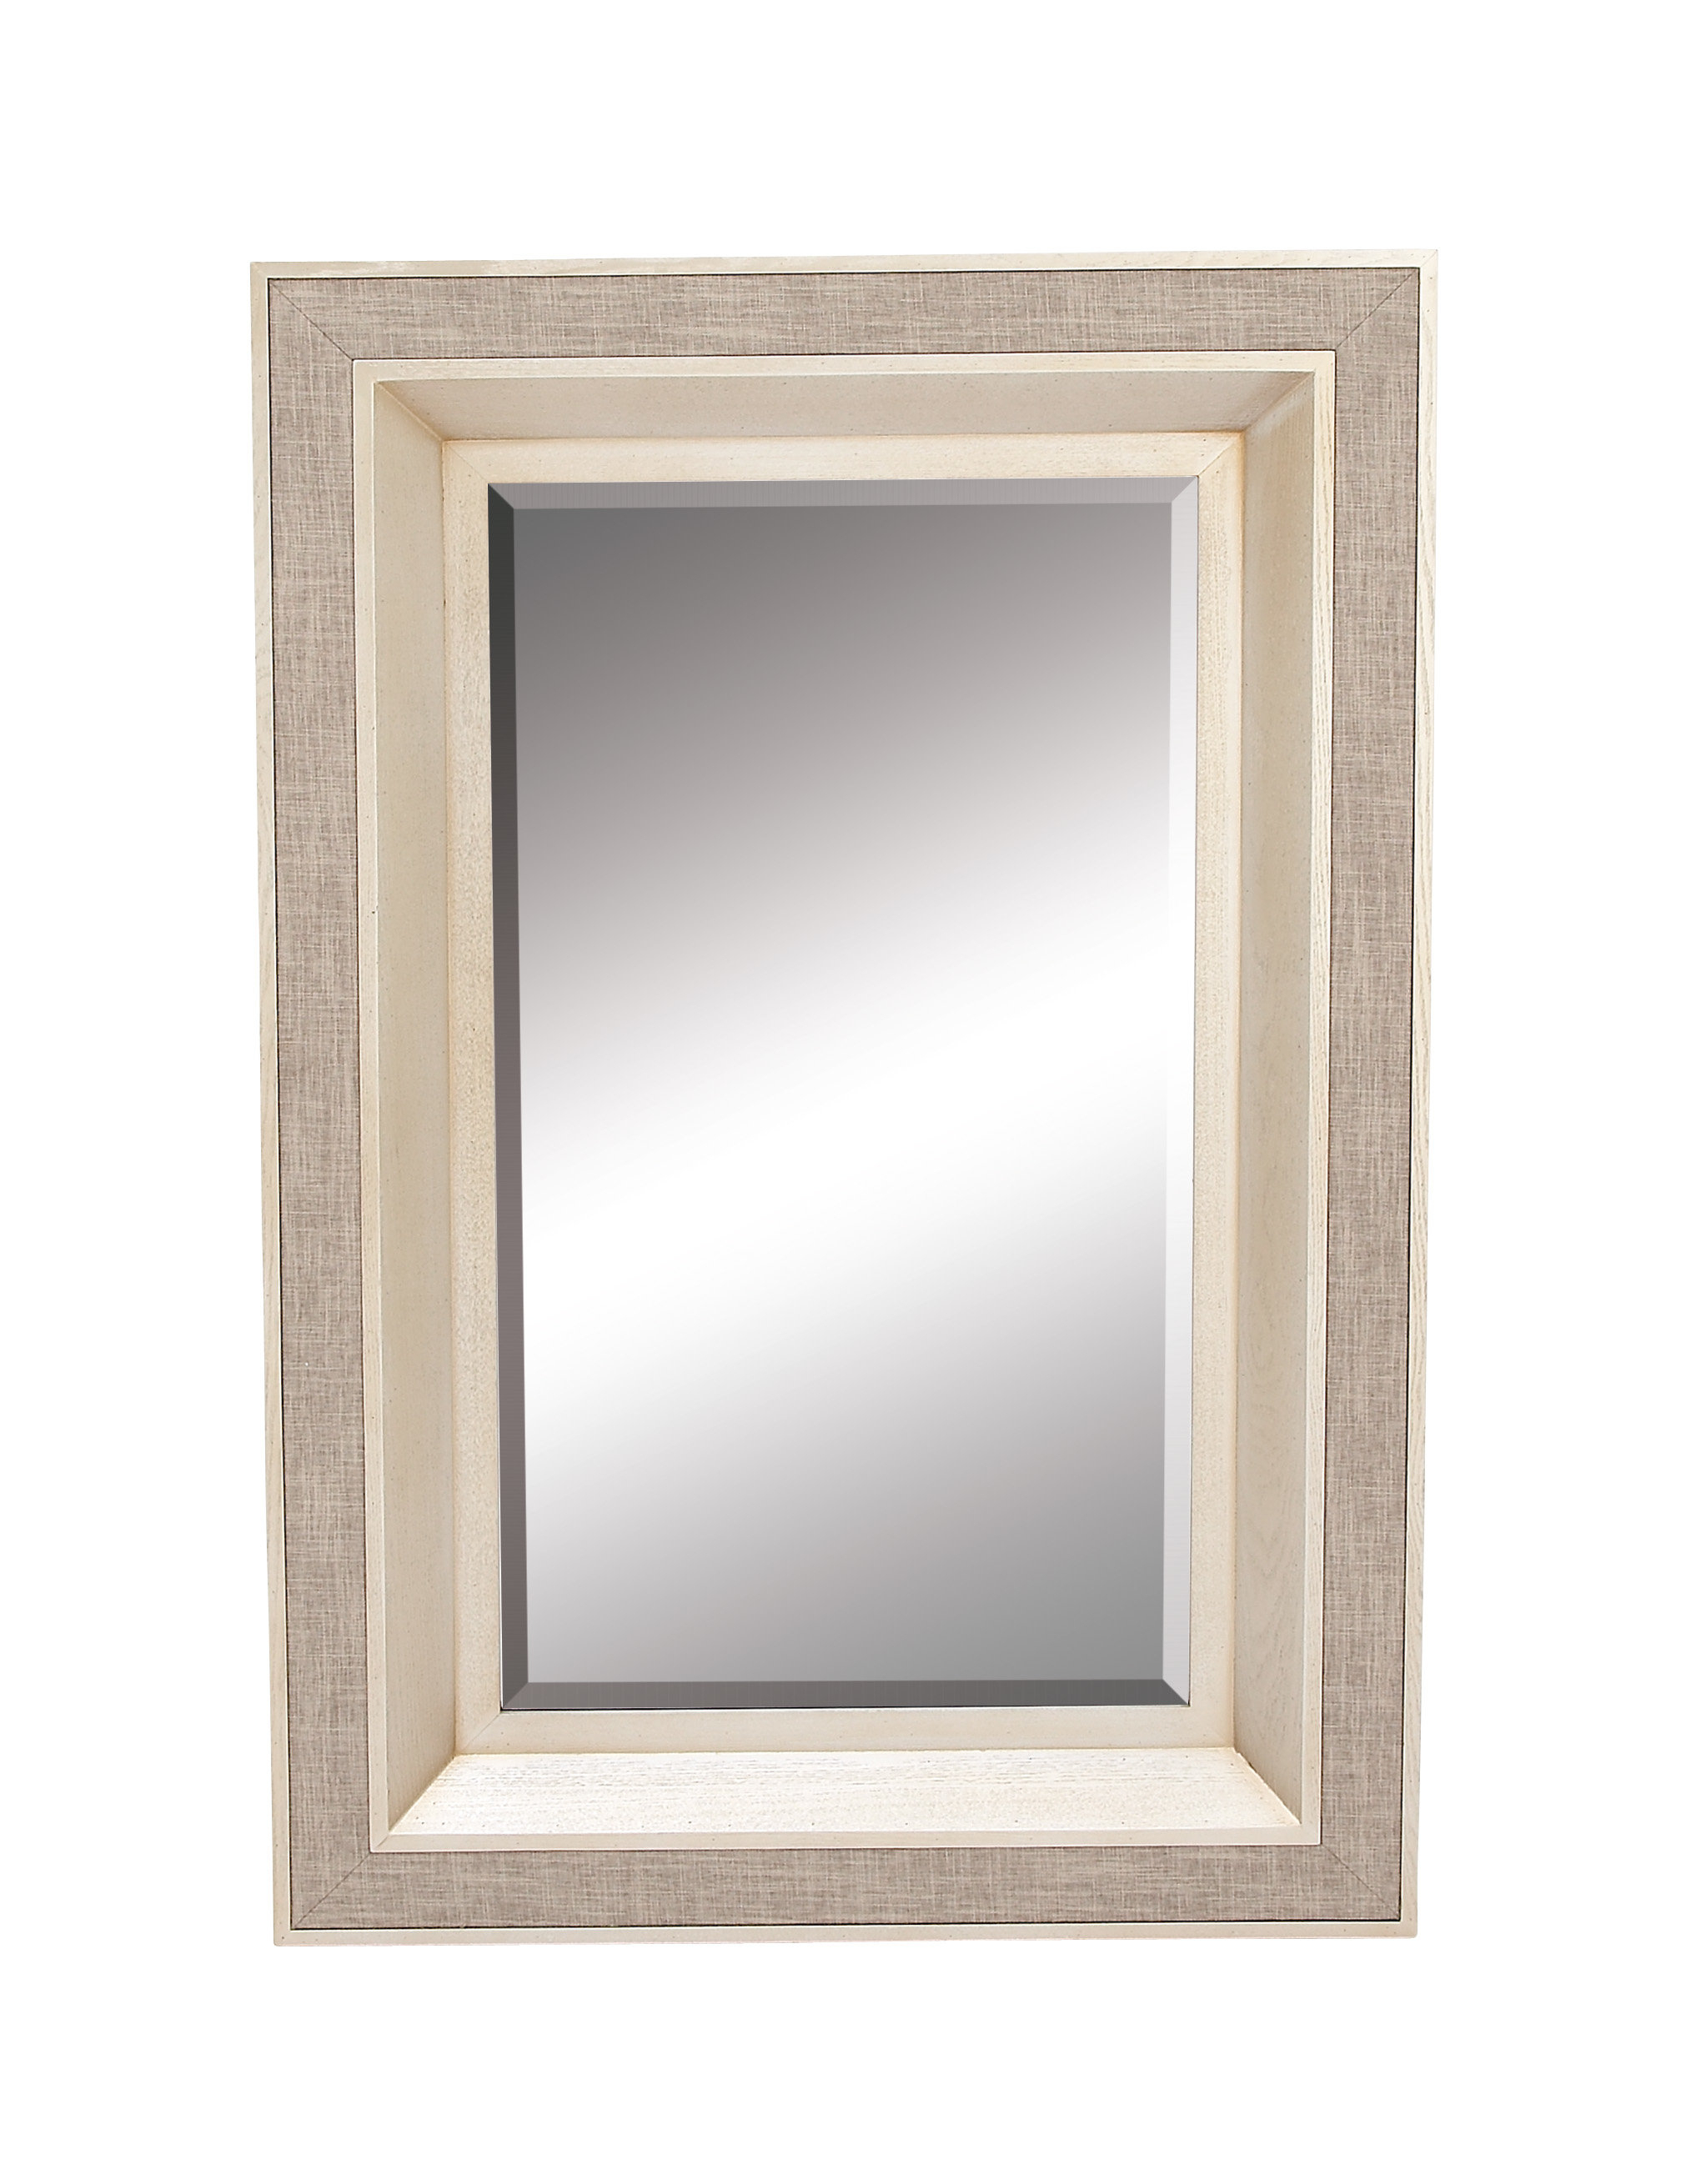 Rectangle Wood Frame Wall Mirror | Wayfair With Caja Rectangle Glass Frame Wall Mirrors (View 19 of 20)